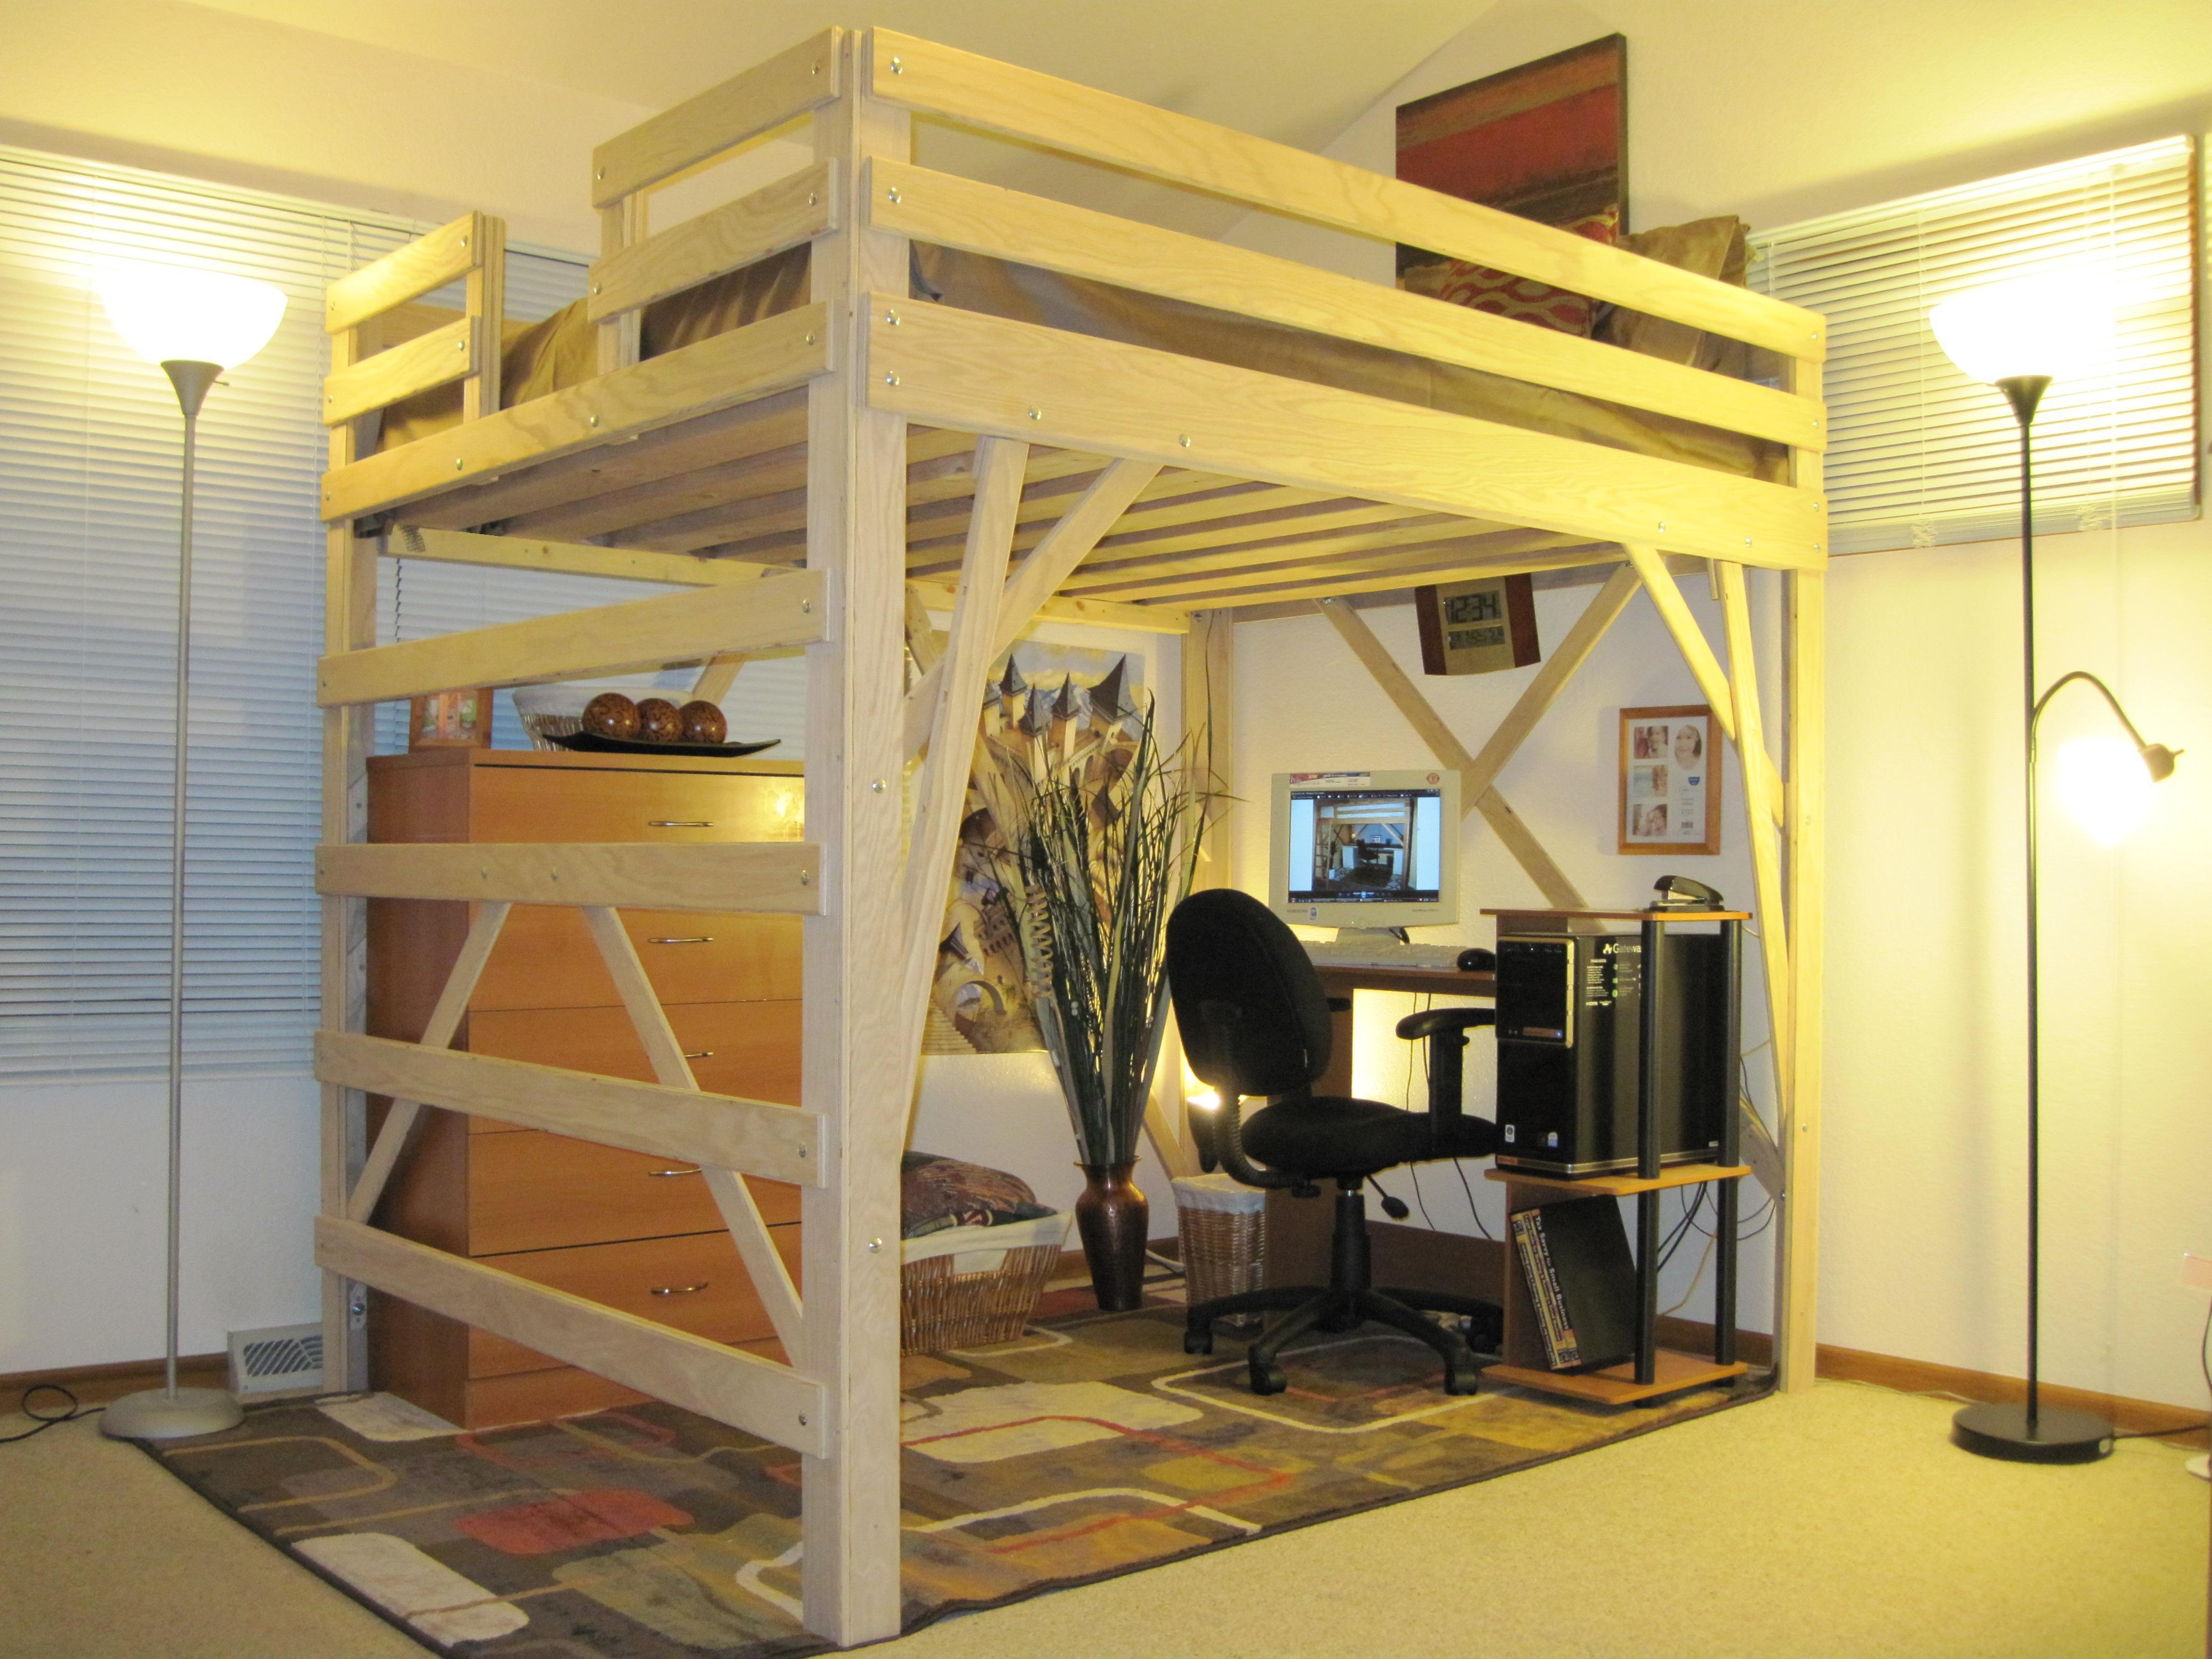 plywood loft bed. Black Bedroom Furniture Sets. Home Design Ideas